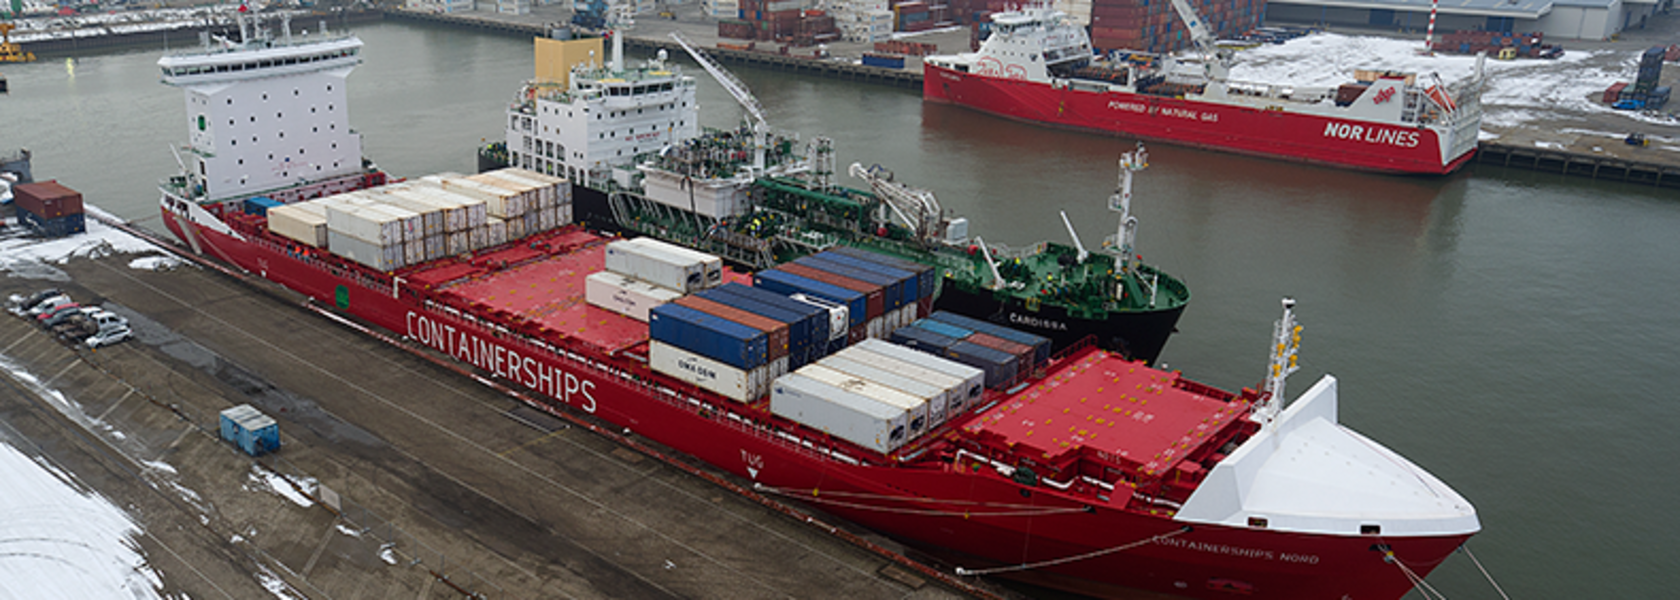 Containerships Nord completes first LNG bunkering operations